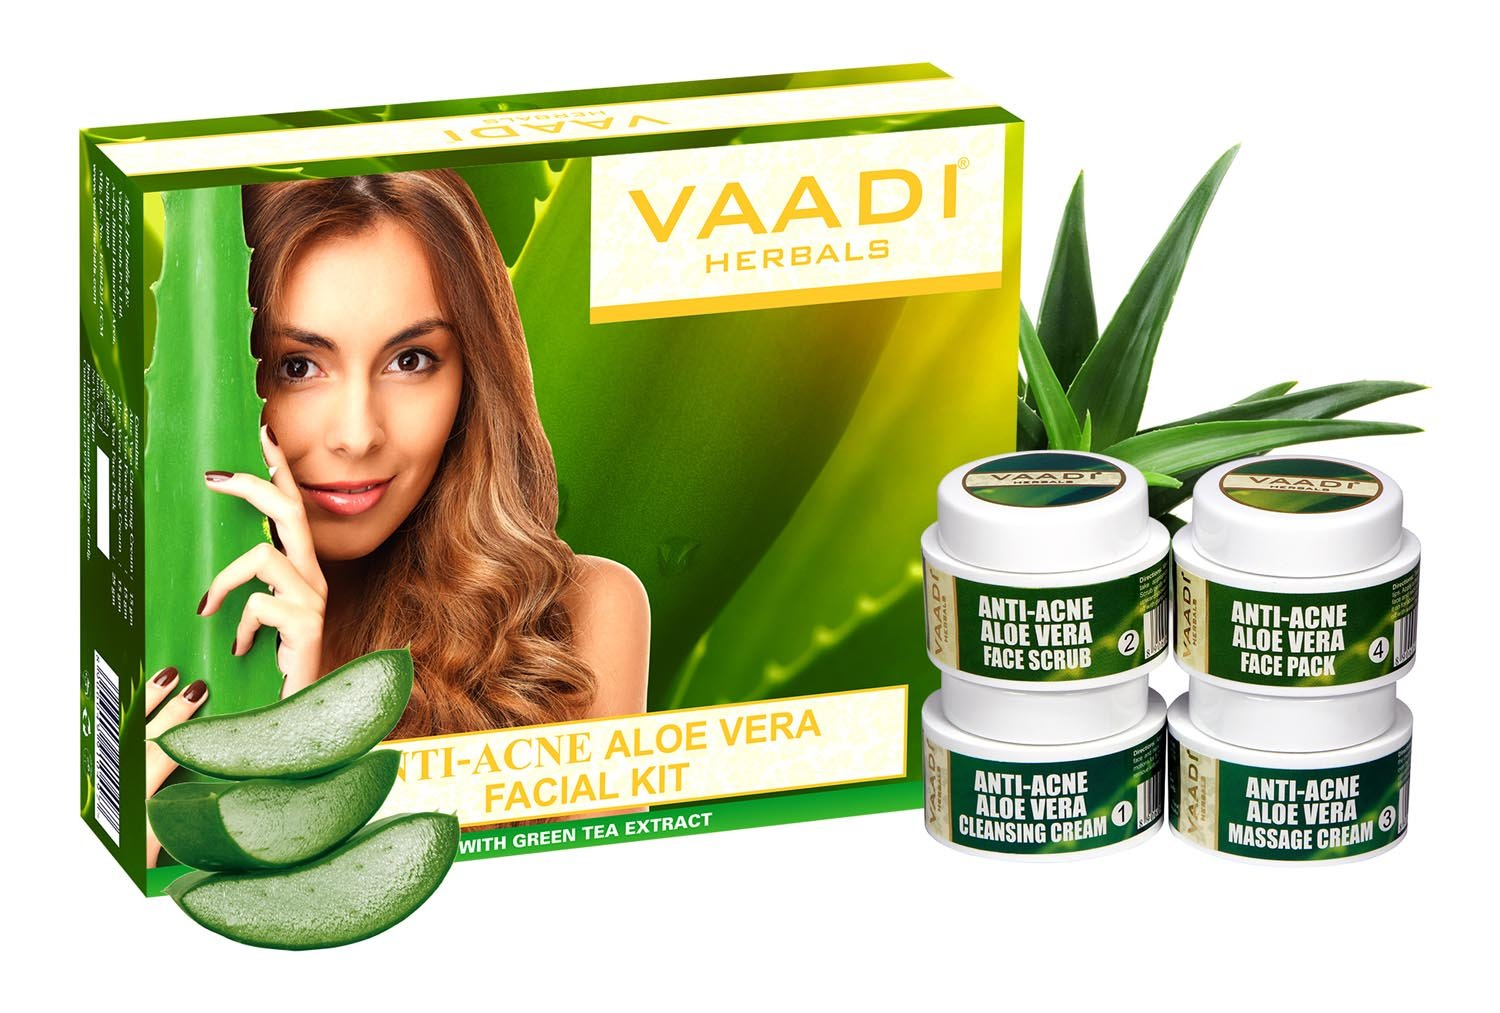 Vaadi Herbals Facial Kit - Aloe Vera Facial Kit With Cedarwood Oil, Grapeseed & Turmeric Extract All Natural Suitable For All Skin Types And Both For Men And Women 70 Grams -